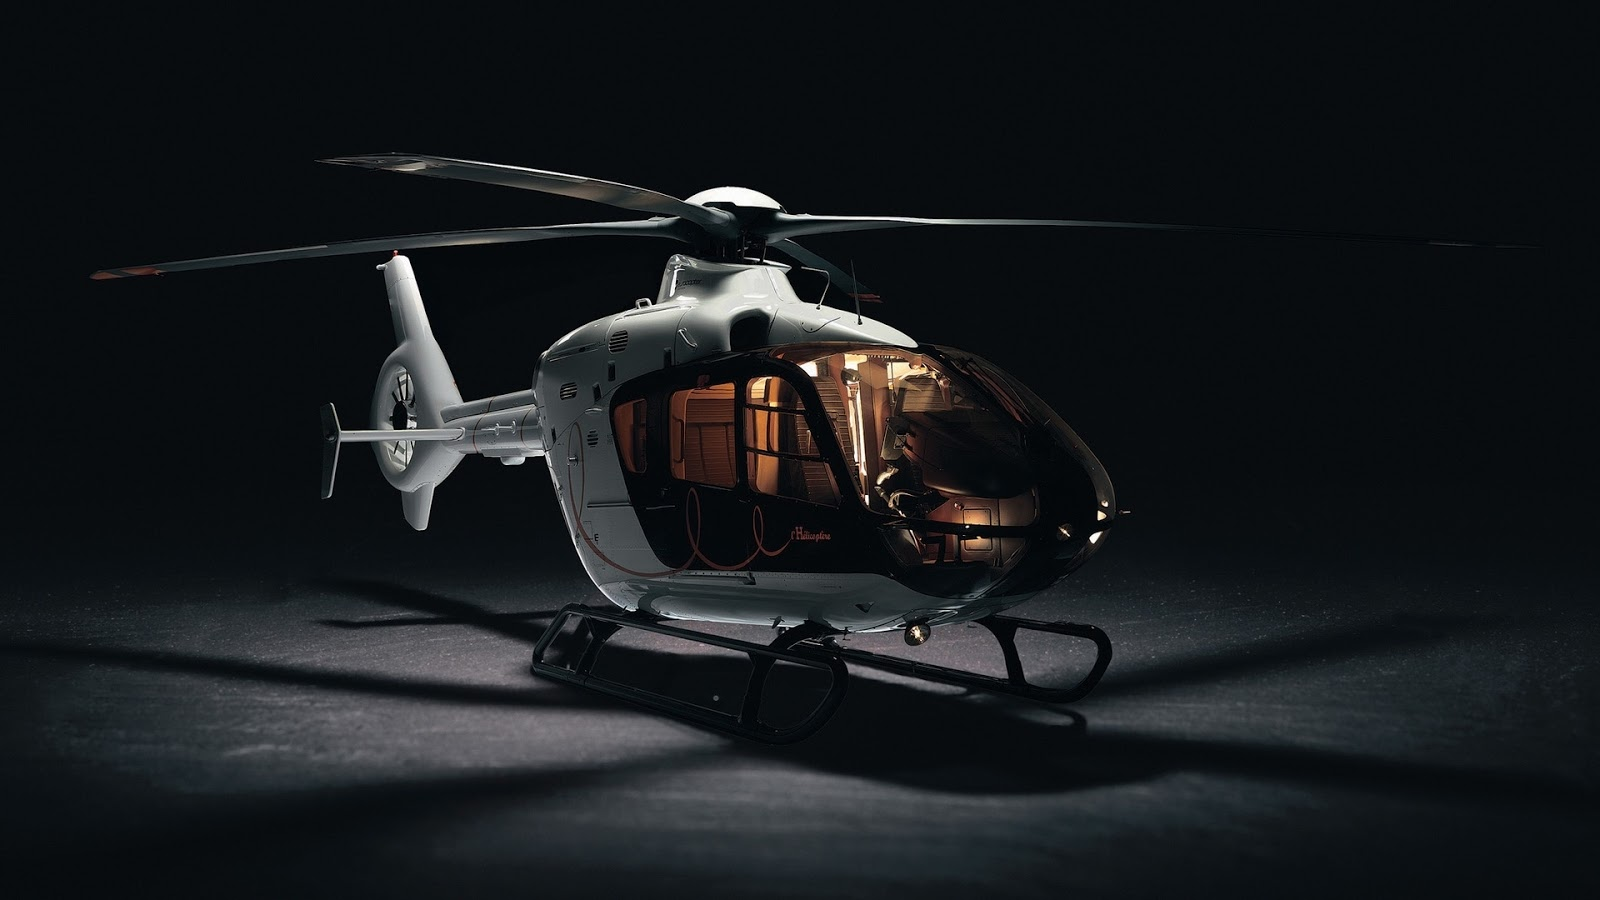 Elicottero Ec 135 : Eurocopter ec helicopter mystery wallpaper